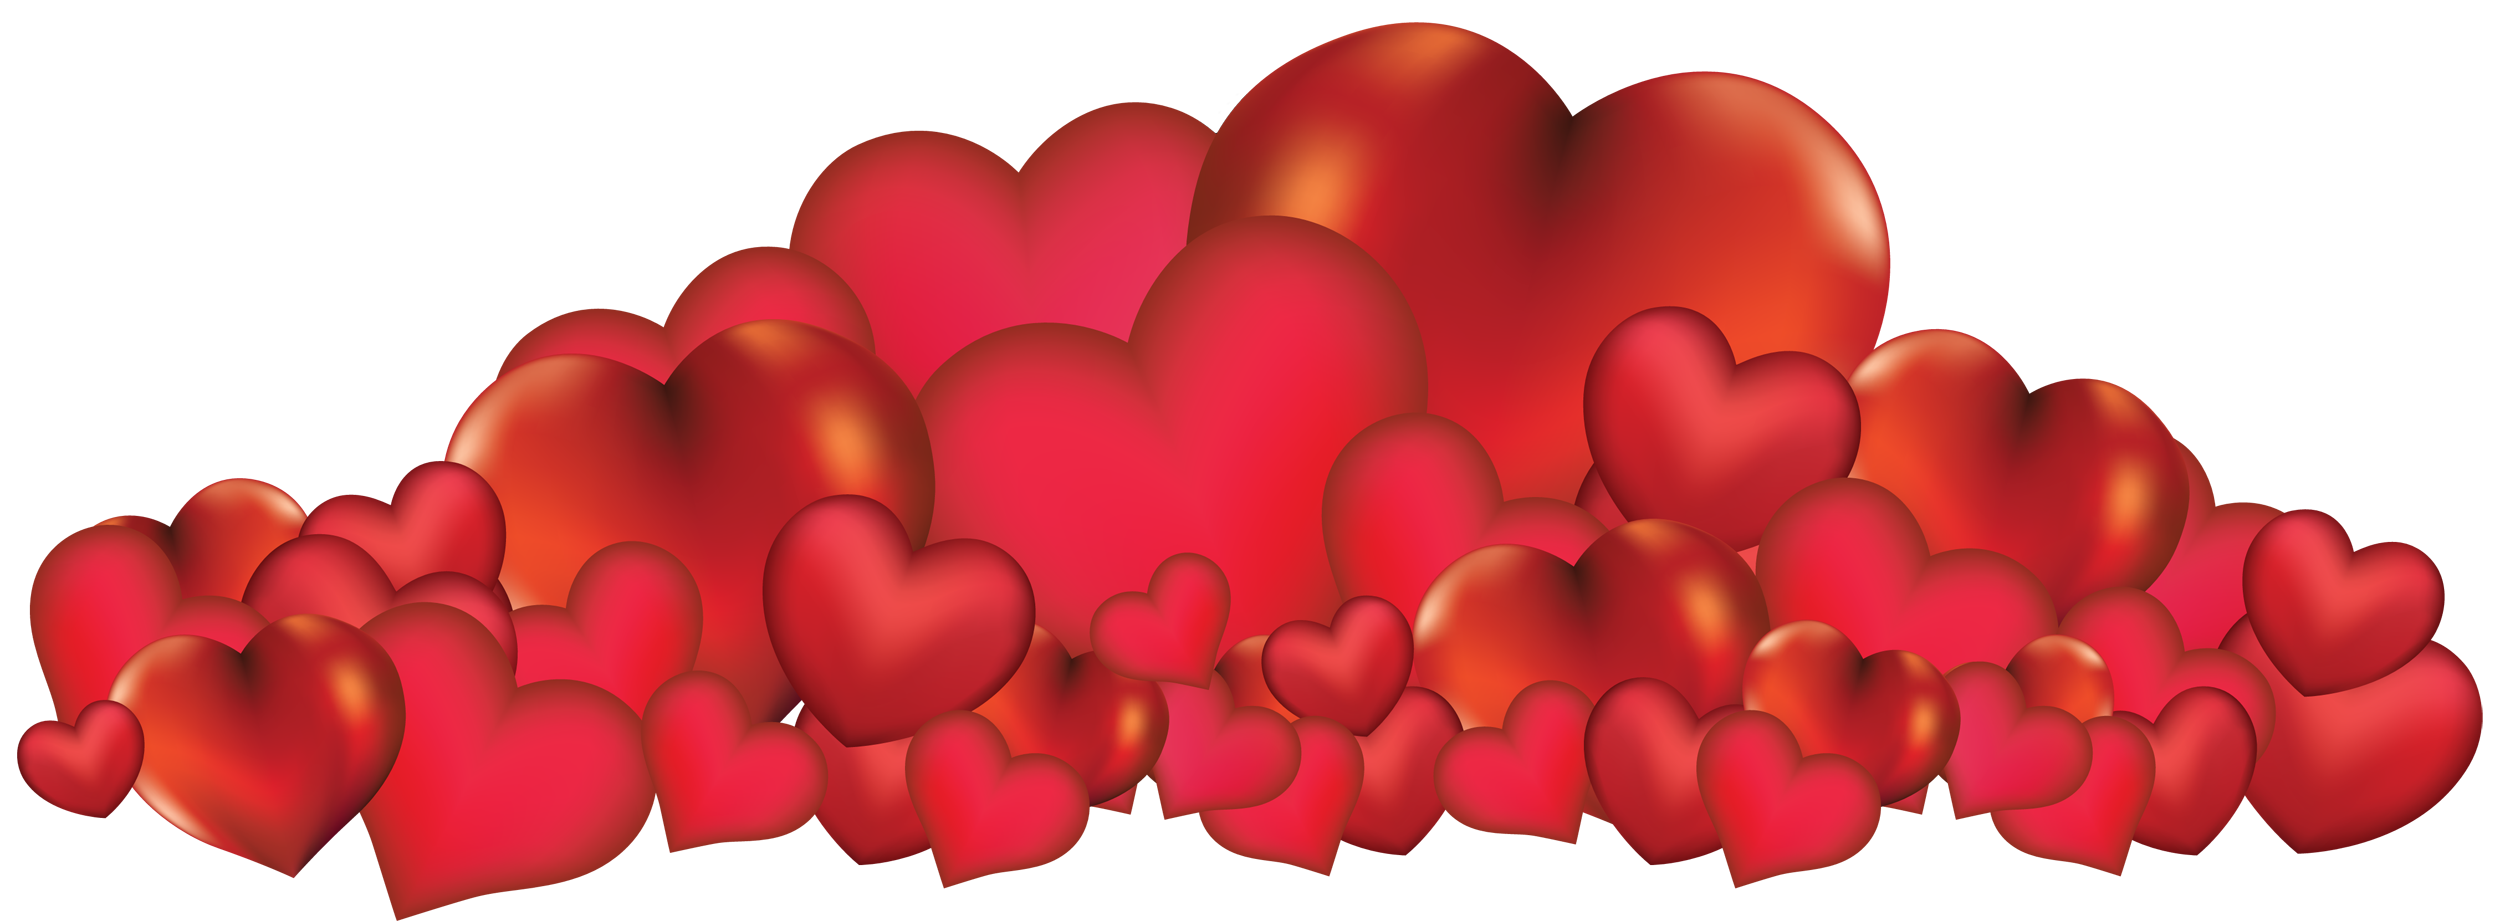 The heart clipart svg royalty free library Bunch of Heart PNG Clipart   Gallery Yopriceville - High-Quality ... svg royalty free library